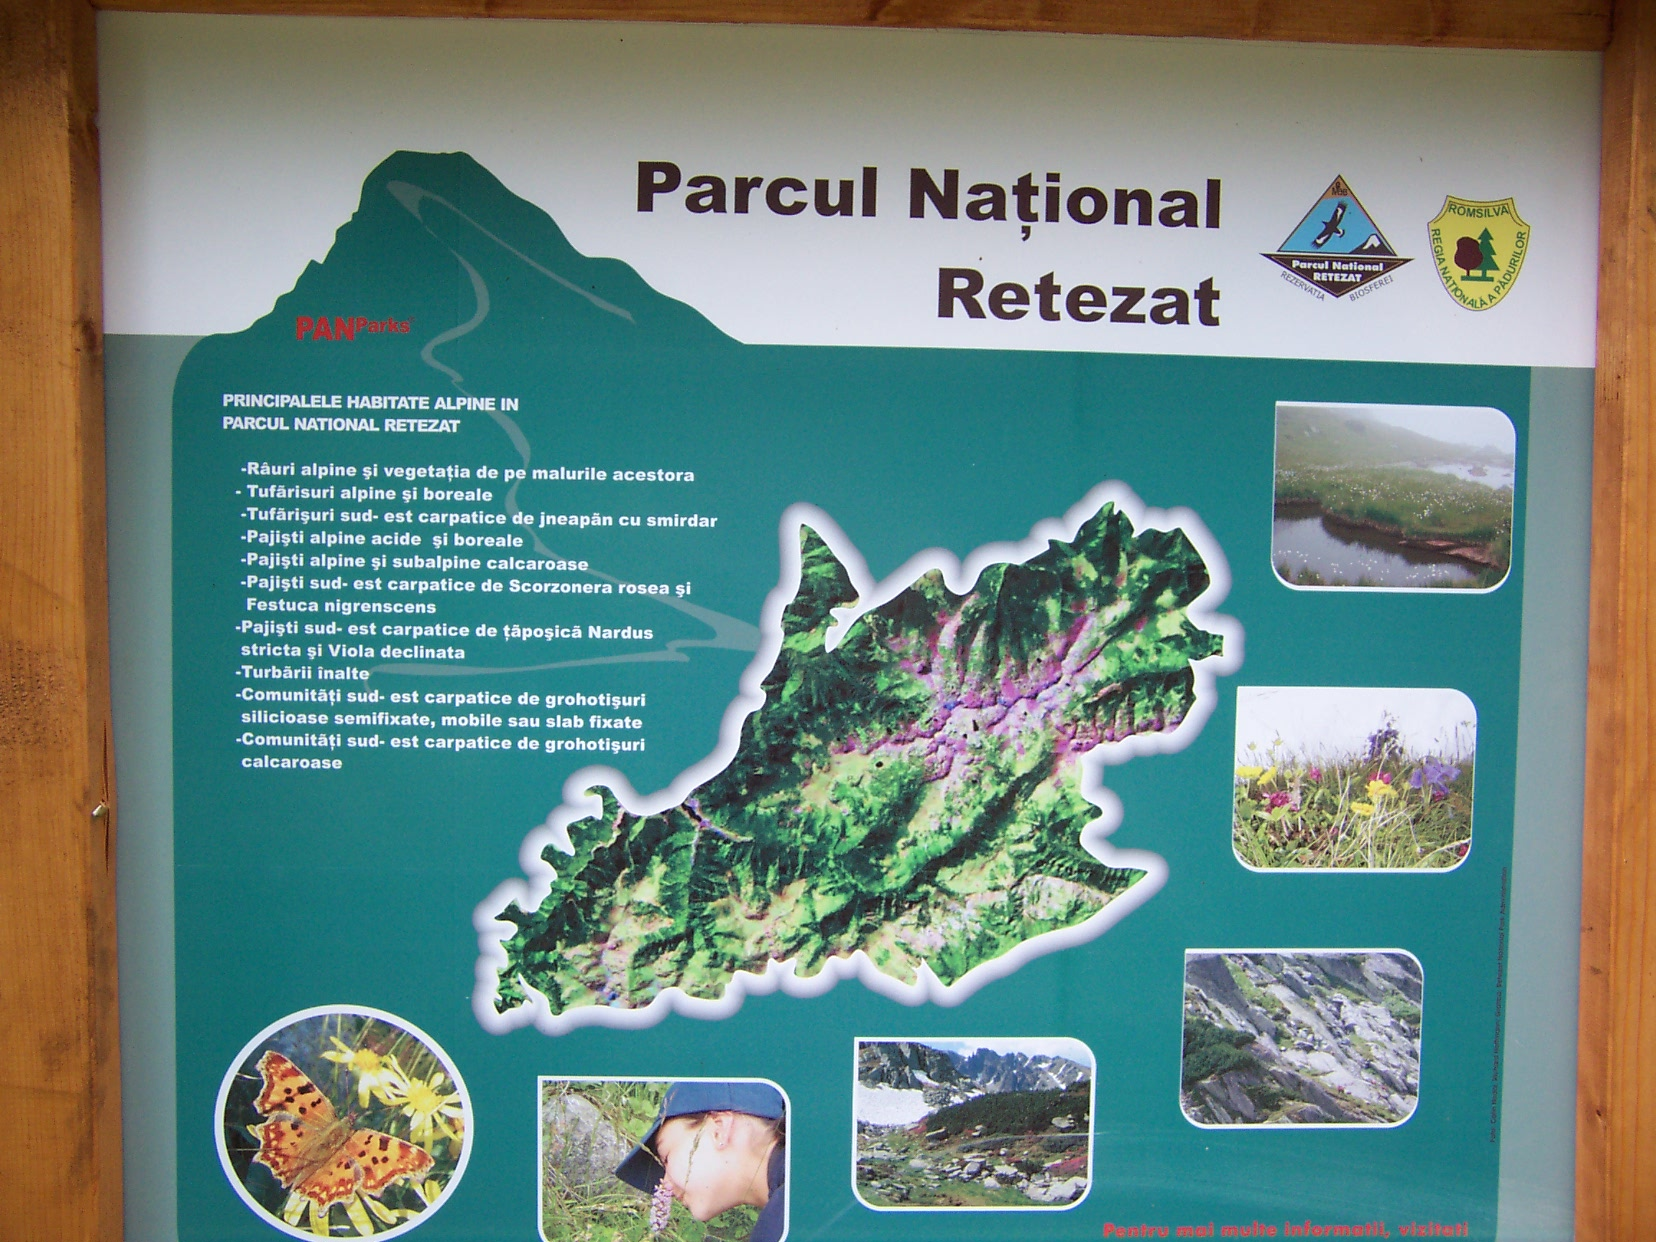 Parcul National Retezat